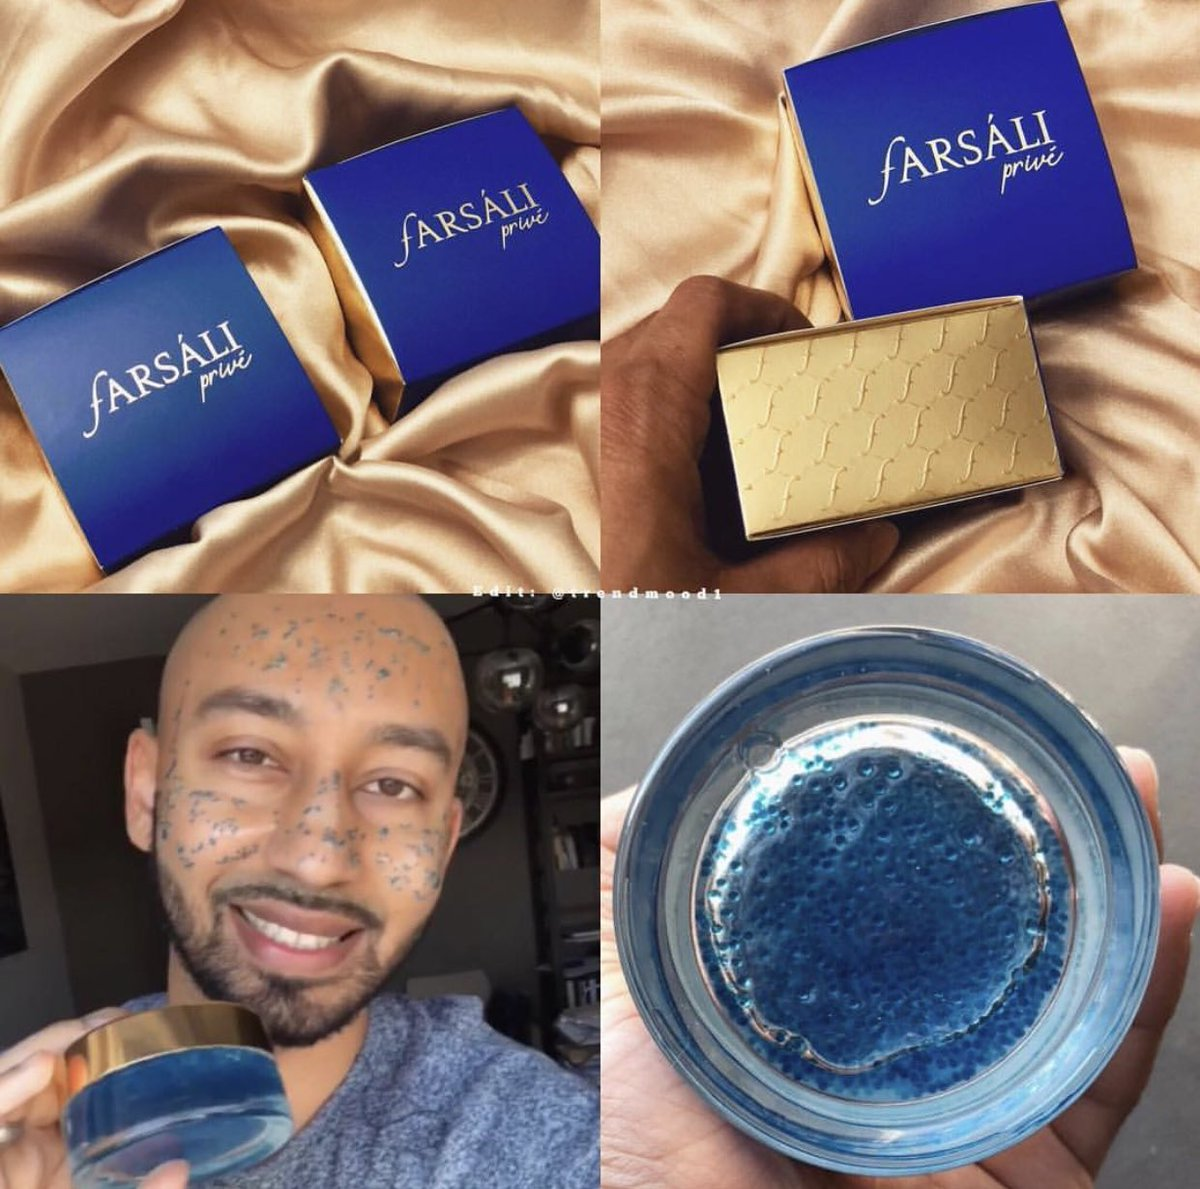 #SneakPeek 👀👀 @farsalicare is teasing us again 💙 with a NEW! Product (which looks like a face mask or exfoliator 💦 and also starting a new line #FarsaliPrive - which will have products with limited quantities and exclusive to their website #comingsoon